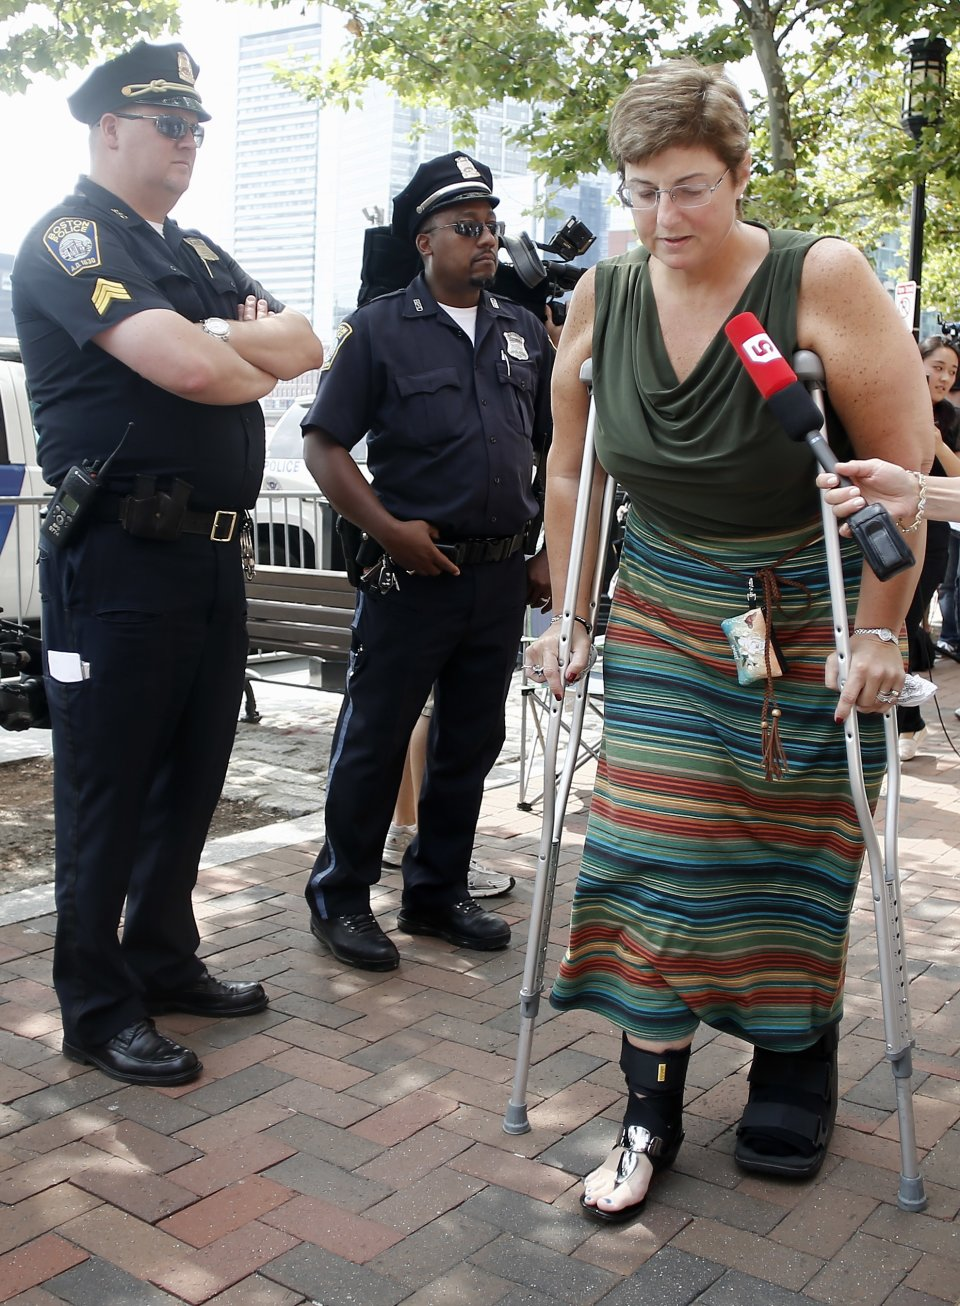 Boston Marathon bombing victim Karen Brassard makes her way into the federal courthouse for the arraignment of bombing suspect Dzhokhar Tsarnaev Wednesday, July 10, 2013, in Boston. The April 15 attack killed three and wounded more than 260. The 19-year-old Tsarnaev has been charged with using a weapon of mass destruction, and could face the death penalty. (AP Photo/Winslow Townson)